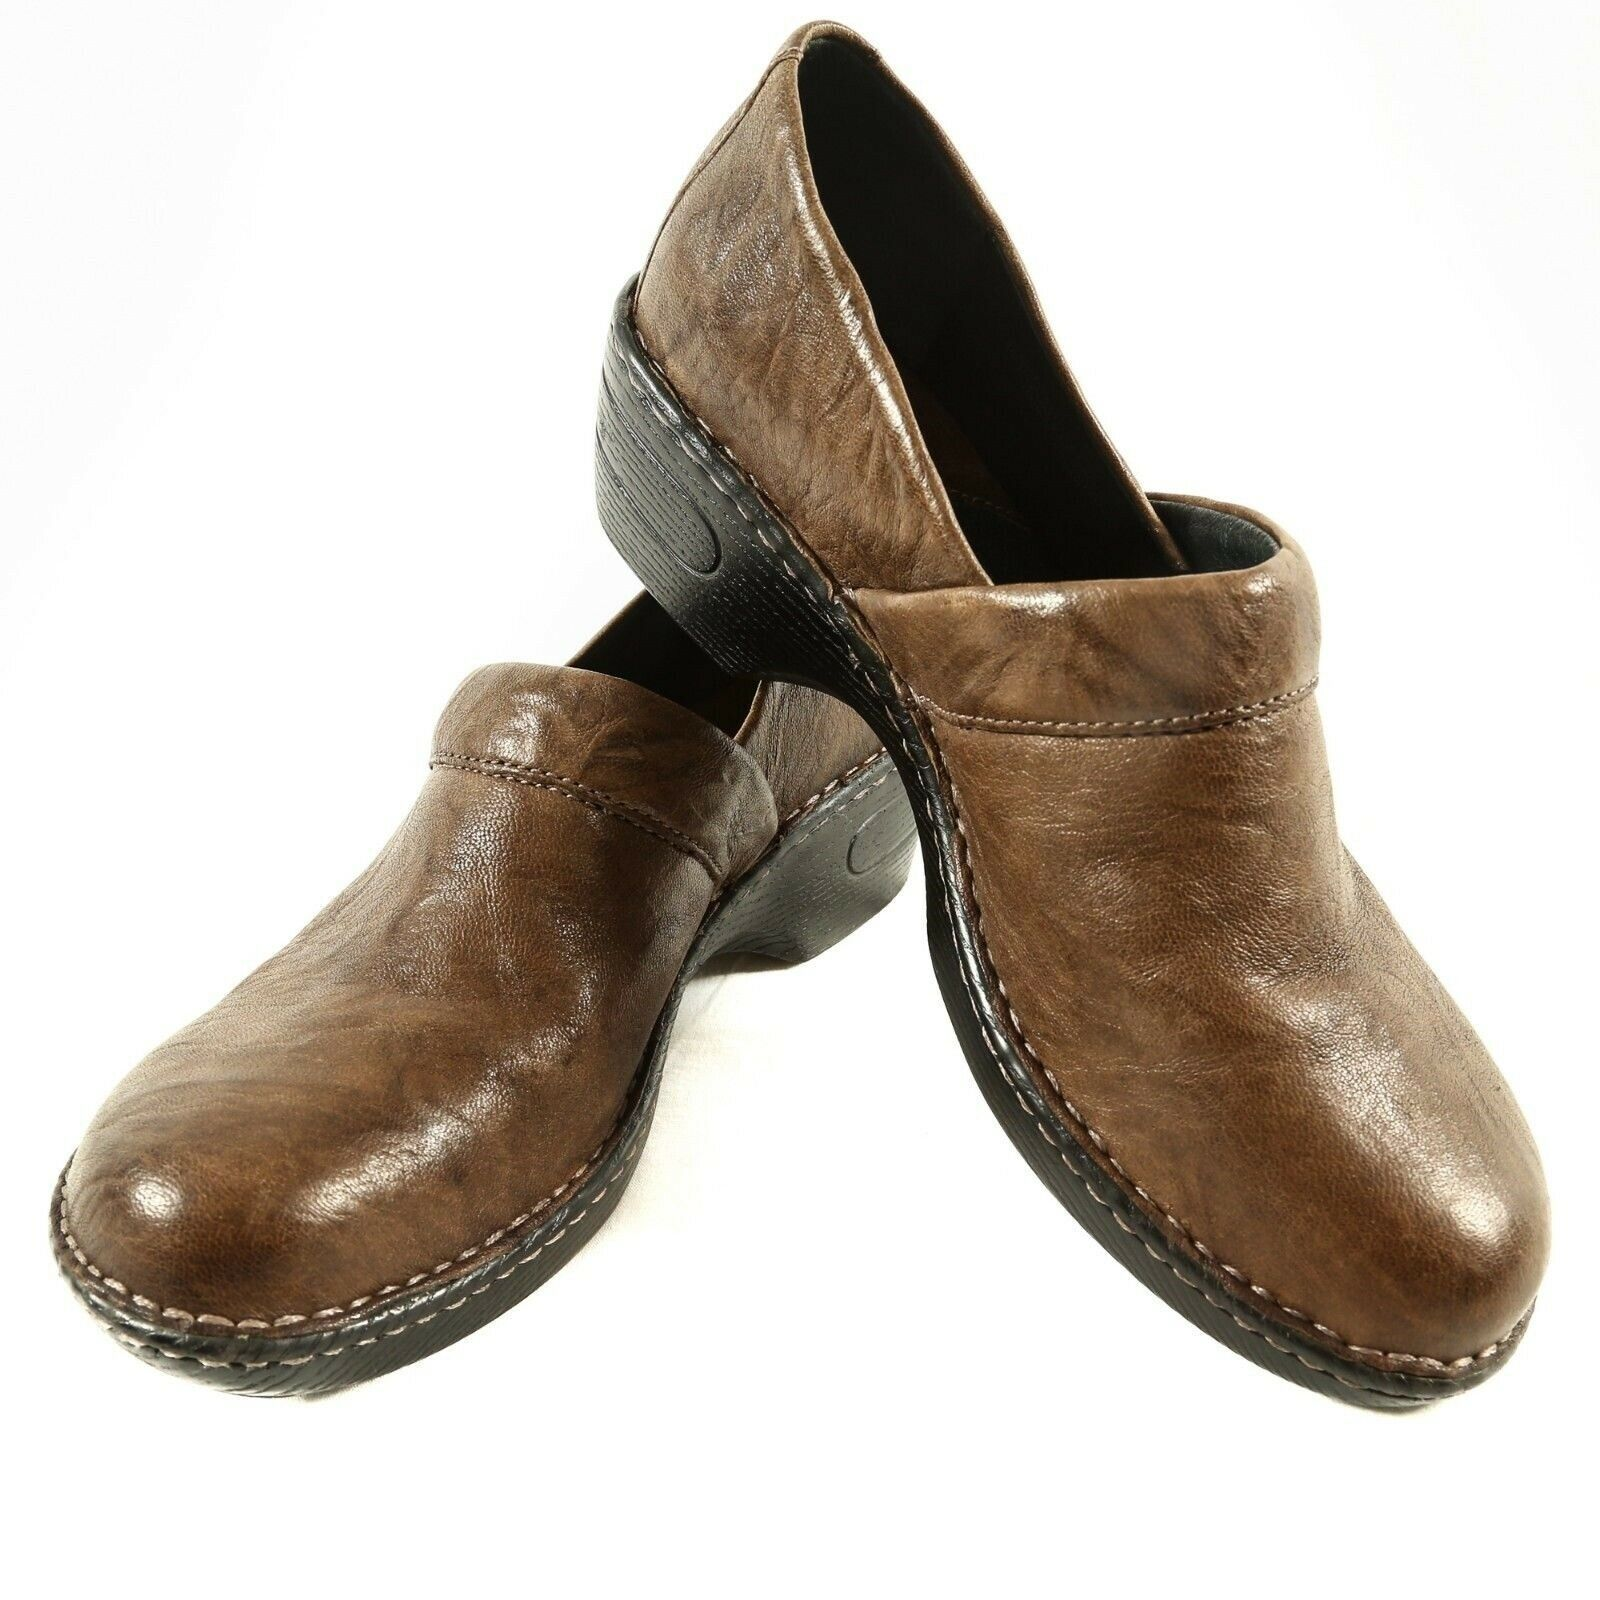 Born Brown Leather Clogs Professional Comfort Slip On Shoes Womens 43 US 11 - $34.49